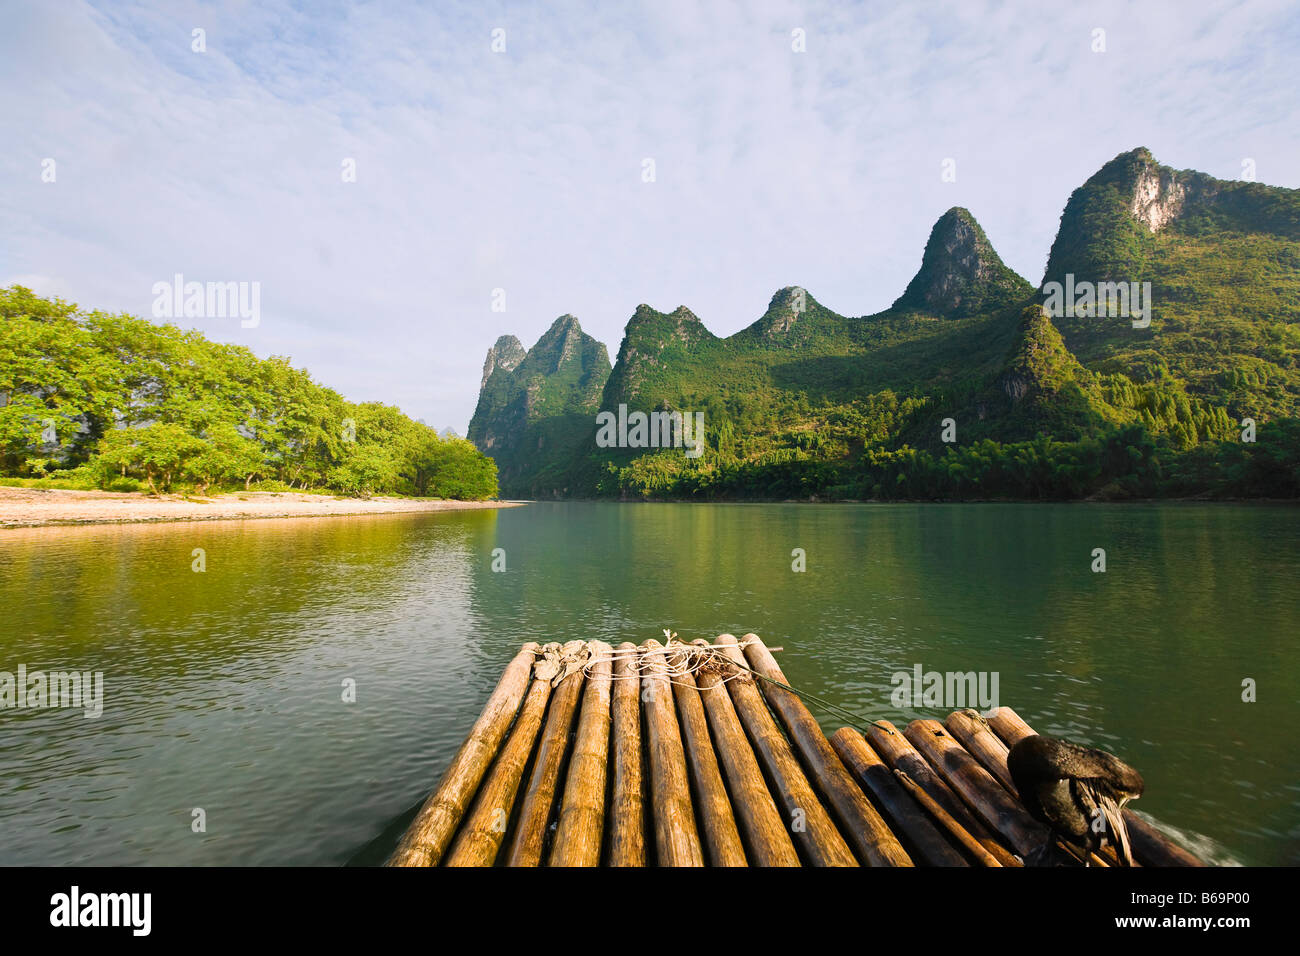 Bamboo raft in a river with a hill range in the background, Guilin Hills, XingPing, Yangshuo, Guangxi Province, - Stock Image